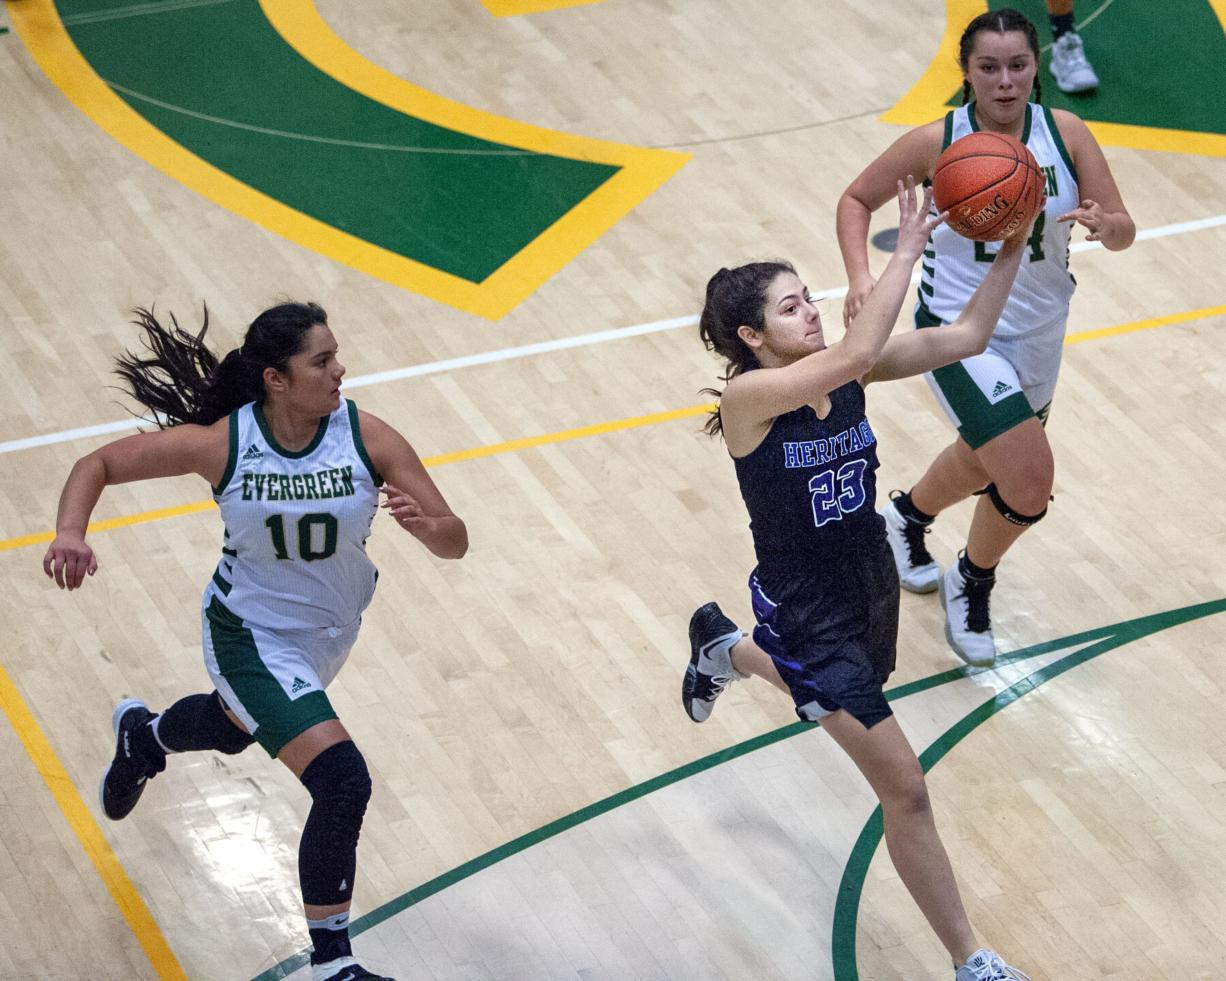 Images from Heritage's 57-19 win over Evergreen in girls basketball nonleague play Tuesday at Evergreen High School.